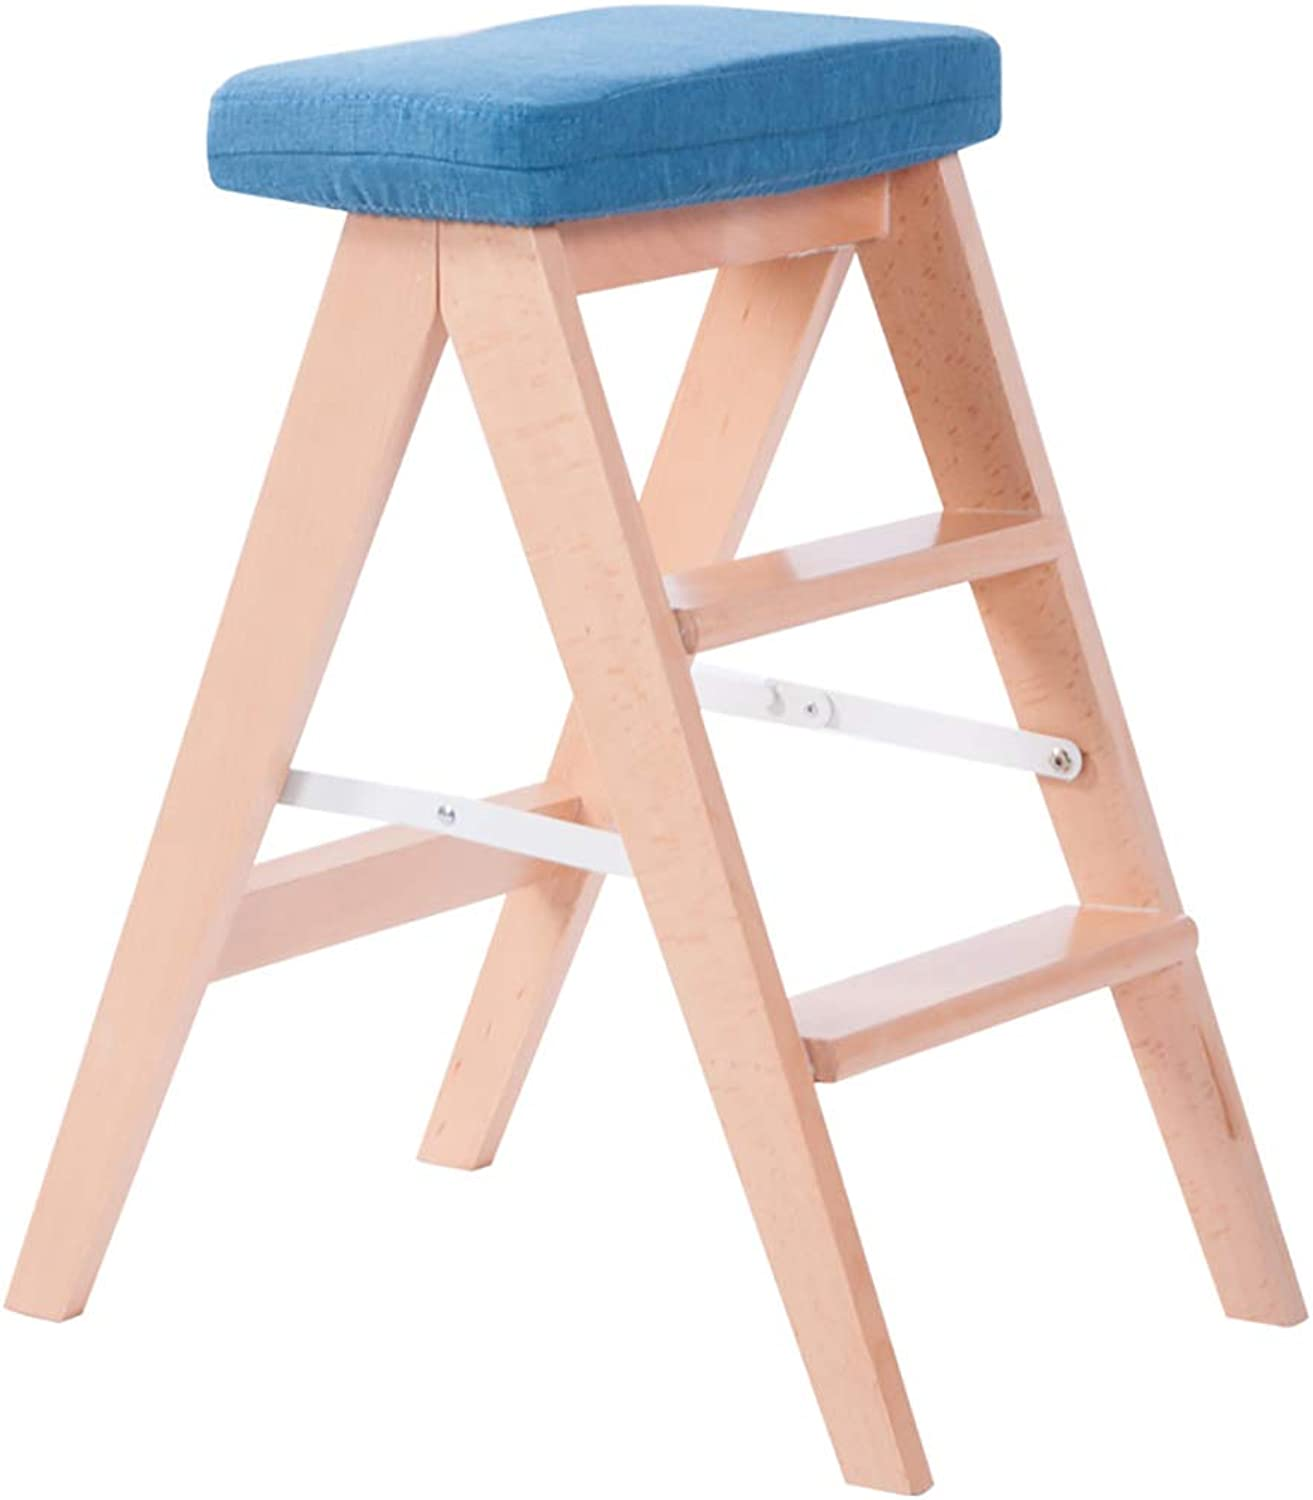 Step stools - Solid Wood Ladder Stool, Home Three-Step Folding Ladder Stool Multi-Function Ladder Chair with Cushion (color   bluee)